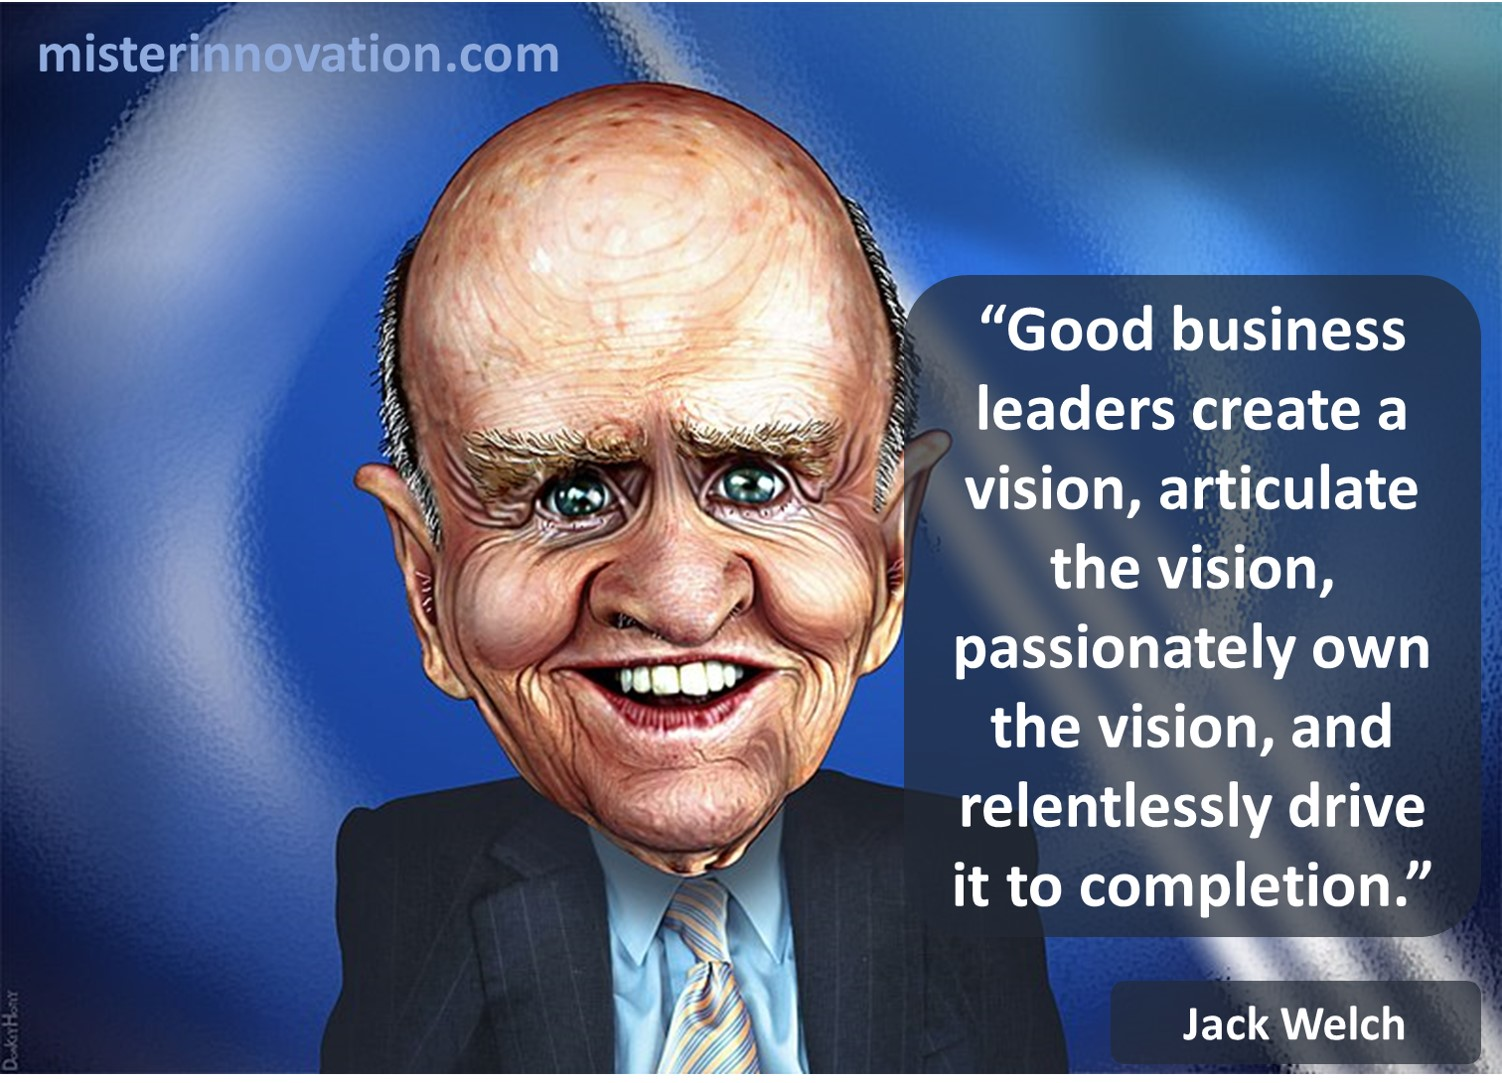 Jack Welch Quote on Leadership and Vision